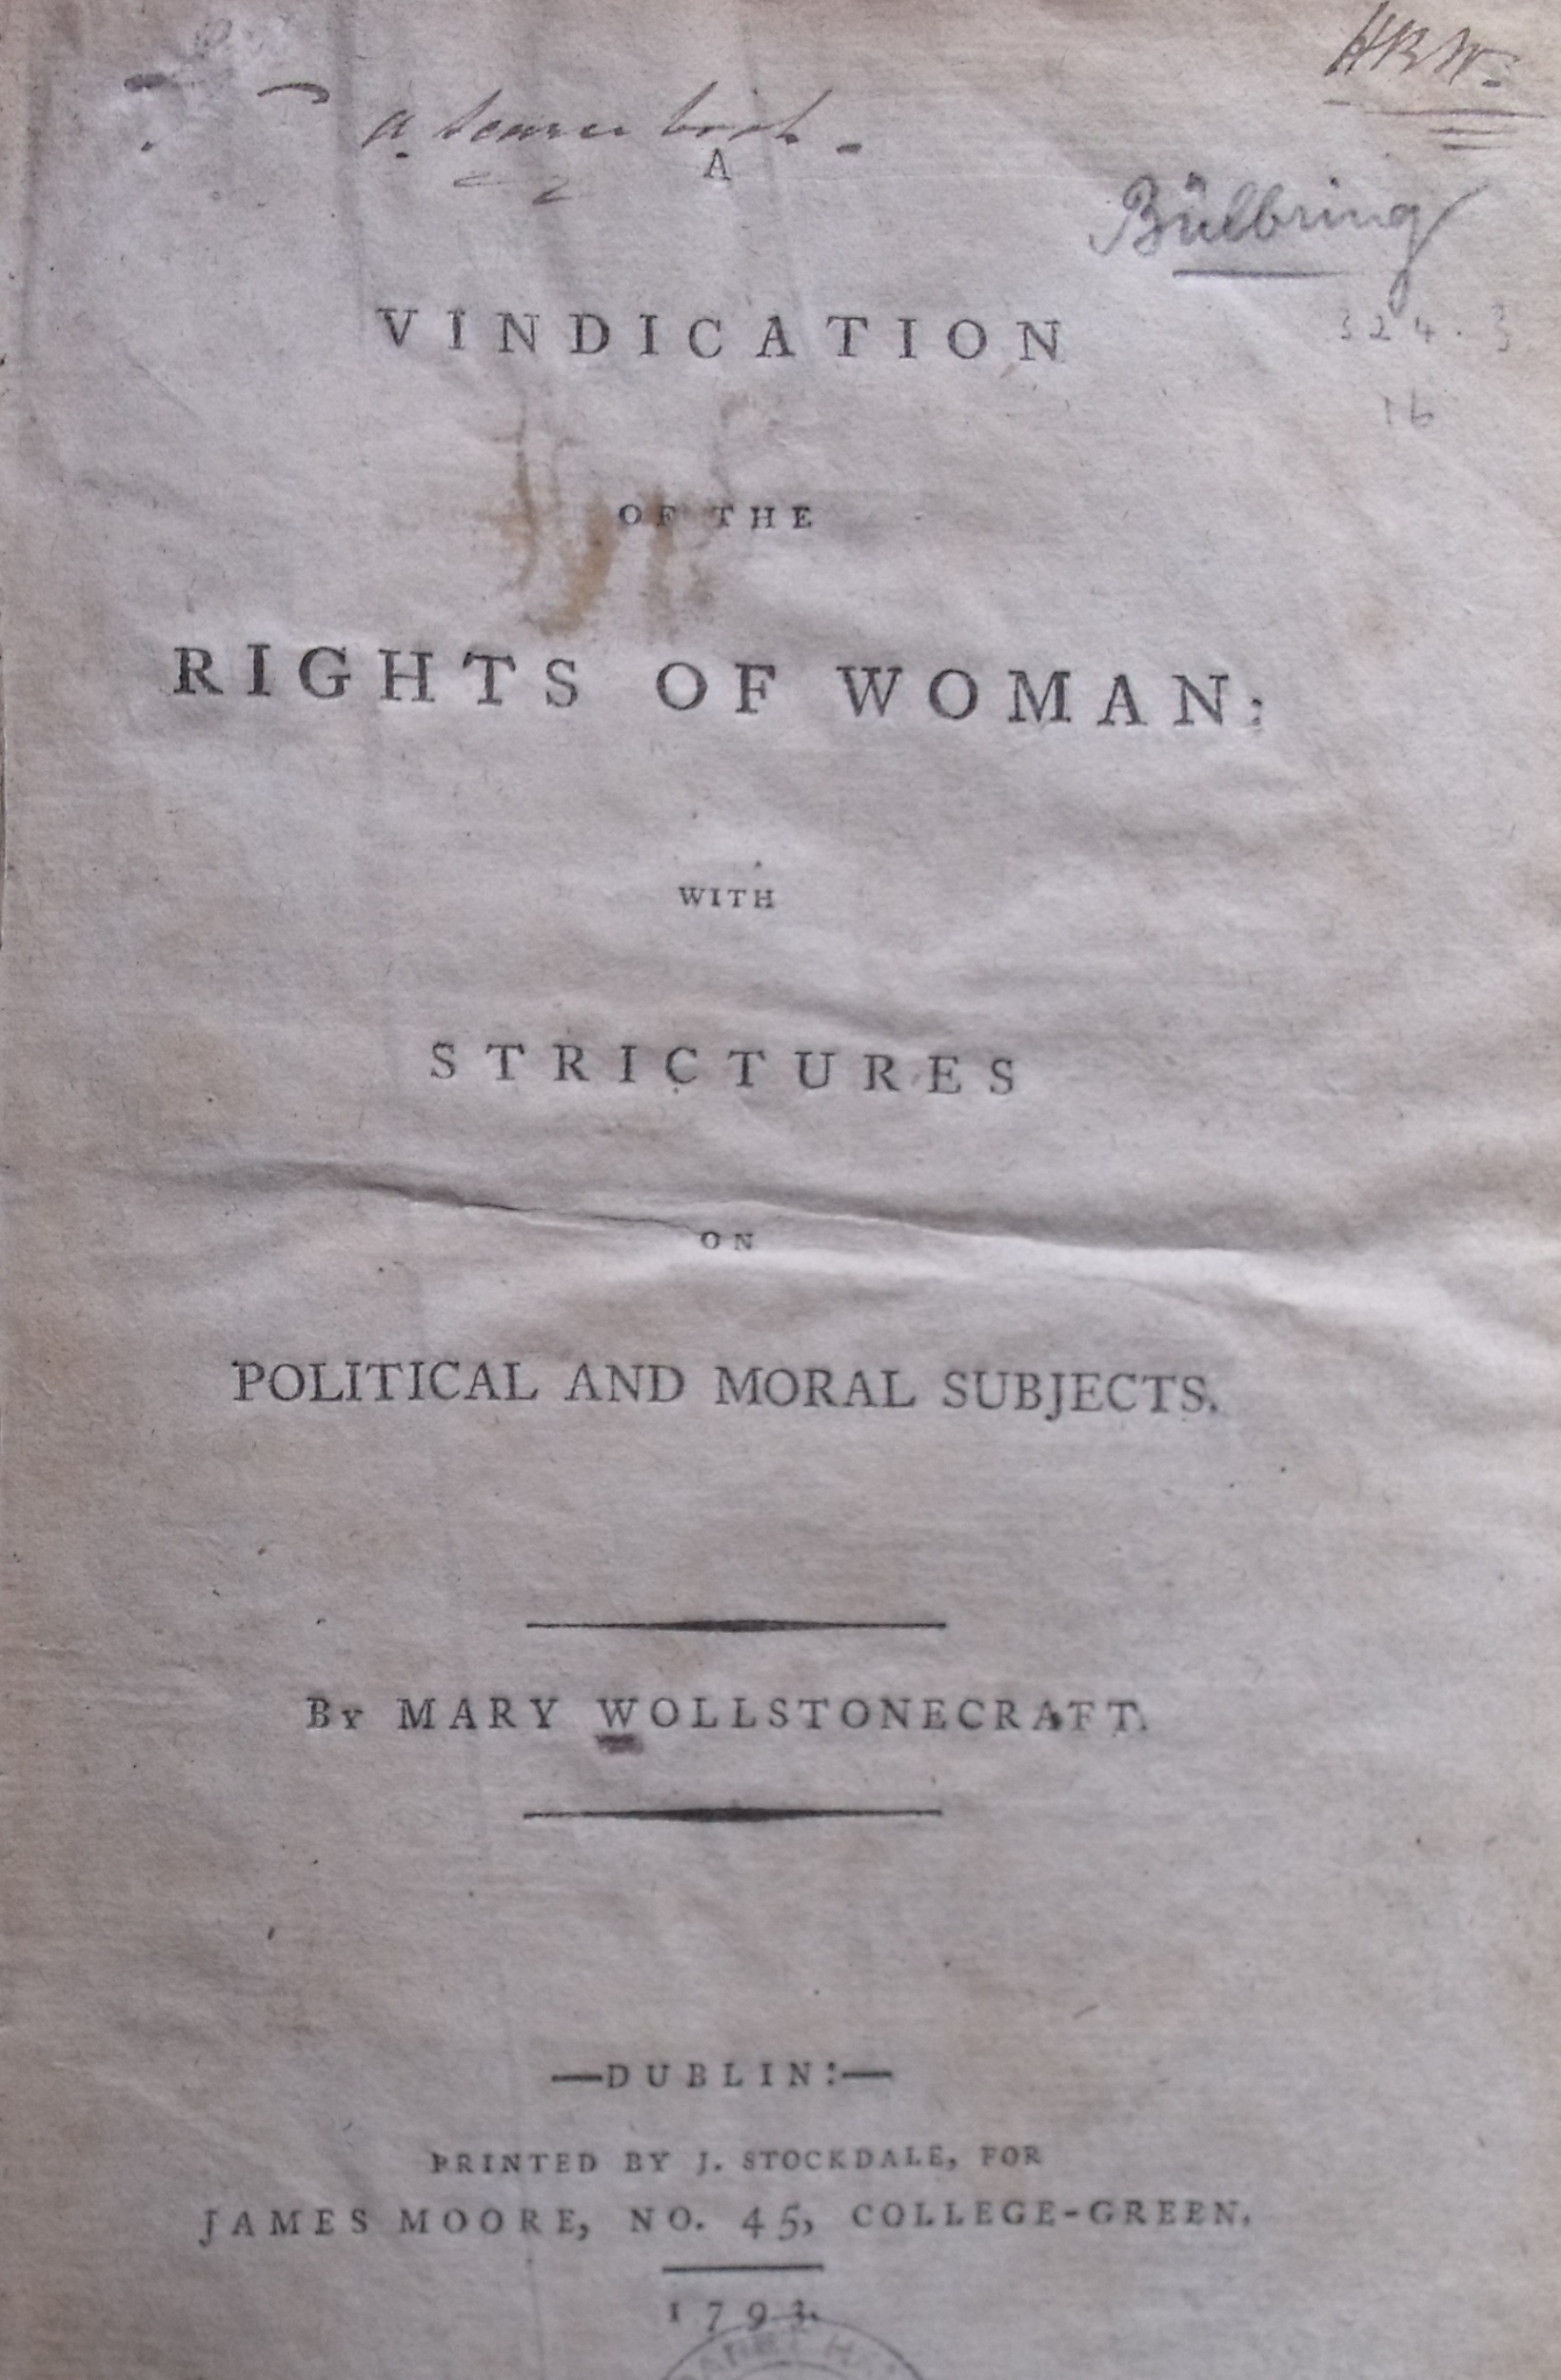 A vindication of the rights of women, by Mary Wollstonecraft